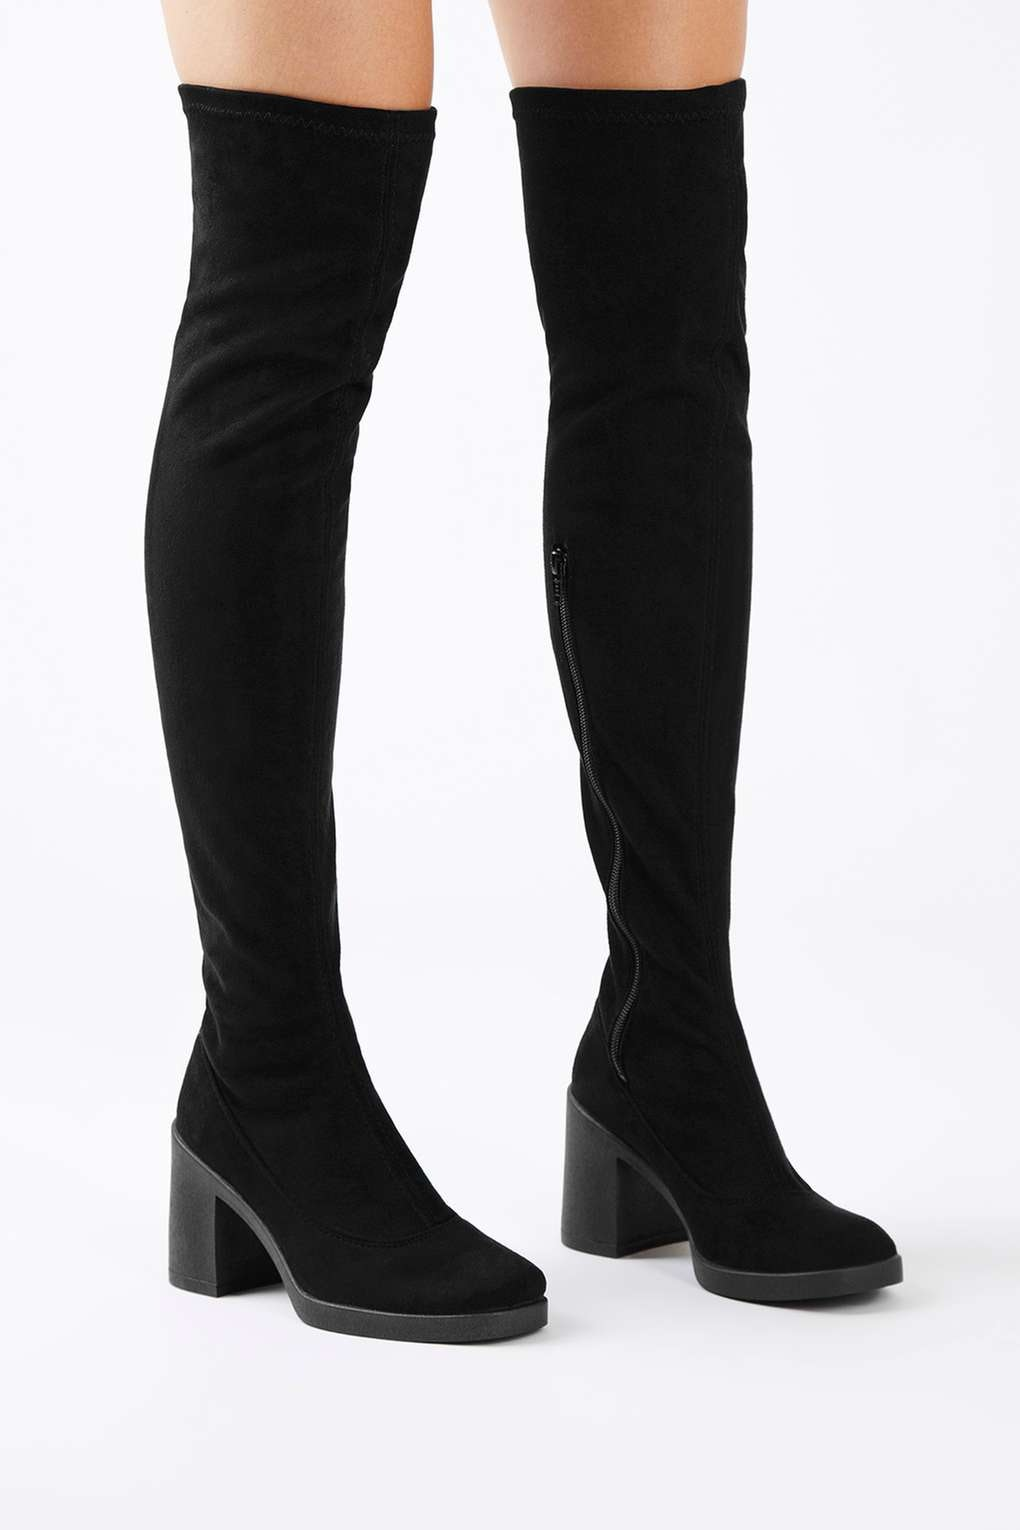 52d919993d8 The Best 2016 Over The Knee Boots For Short Legs